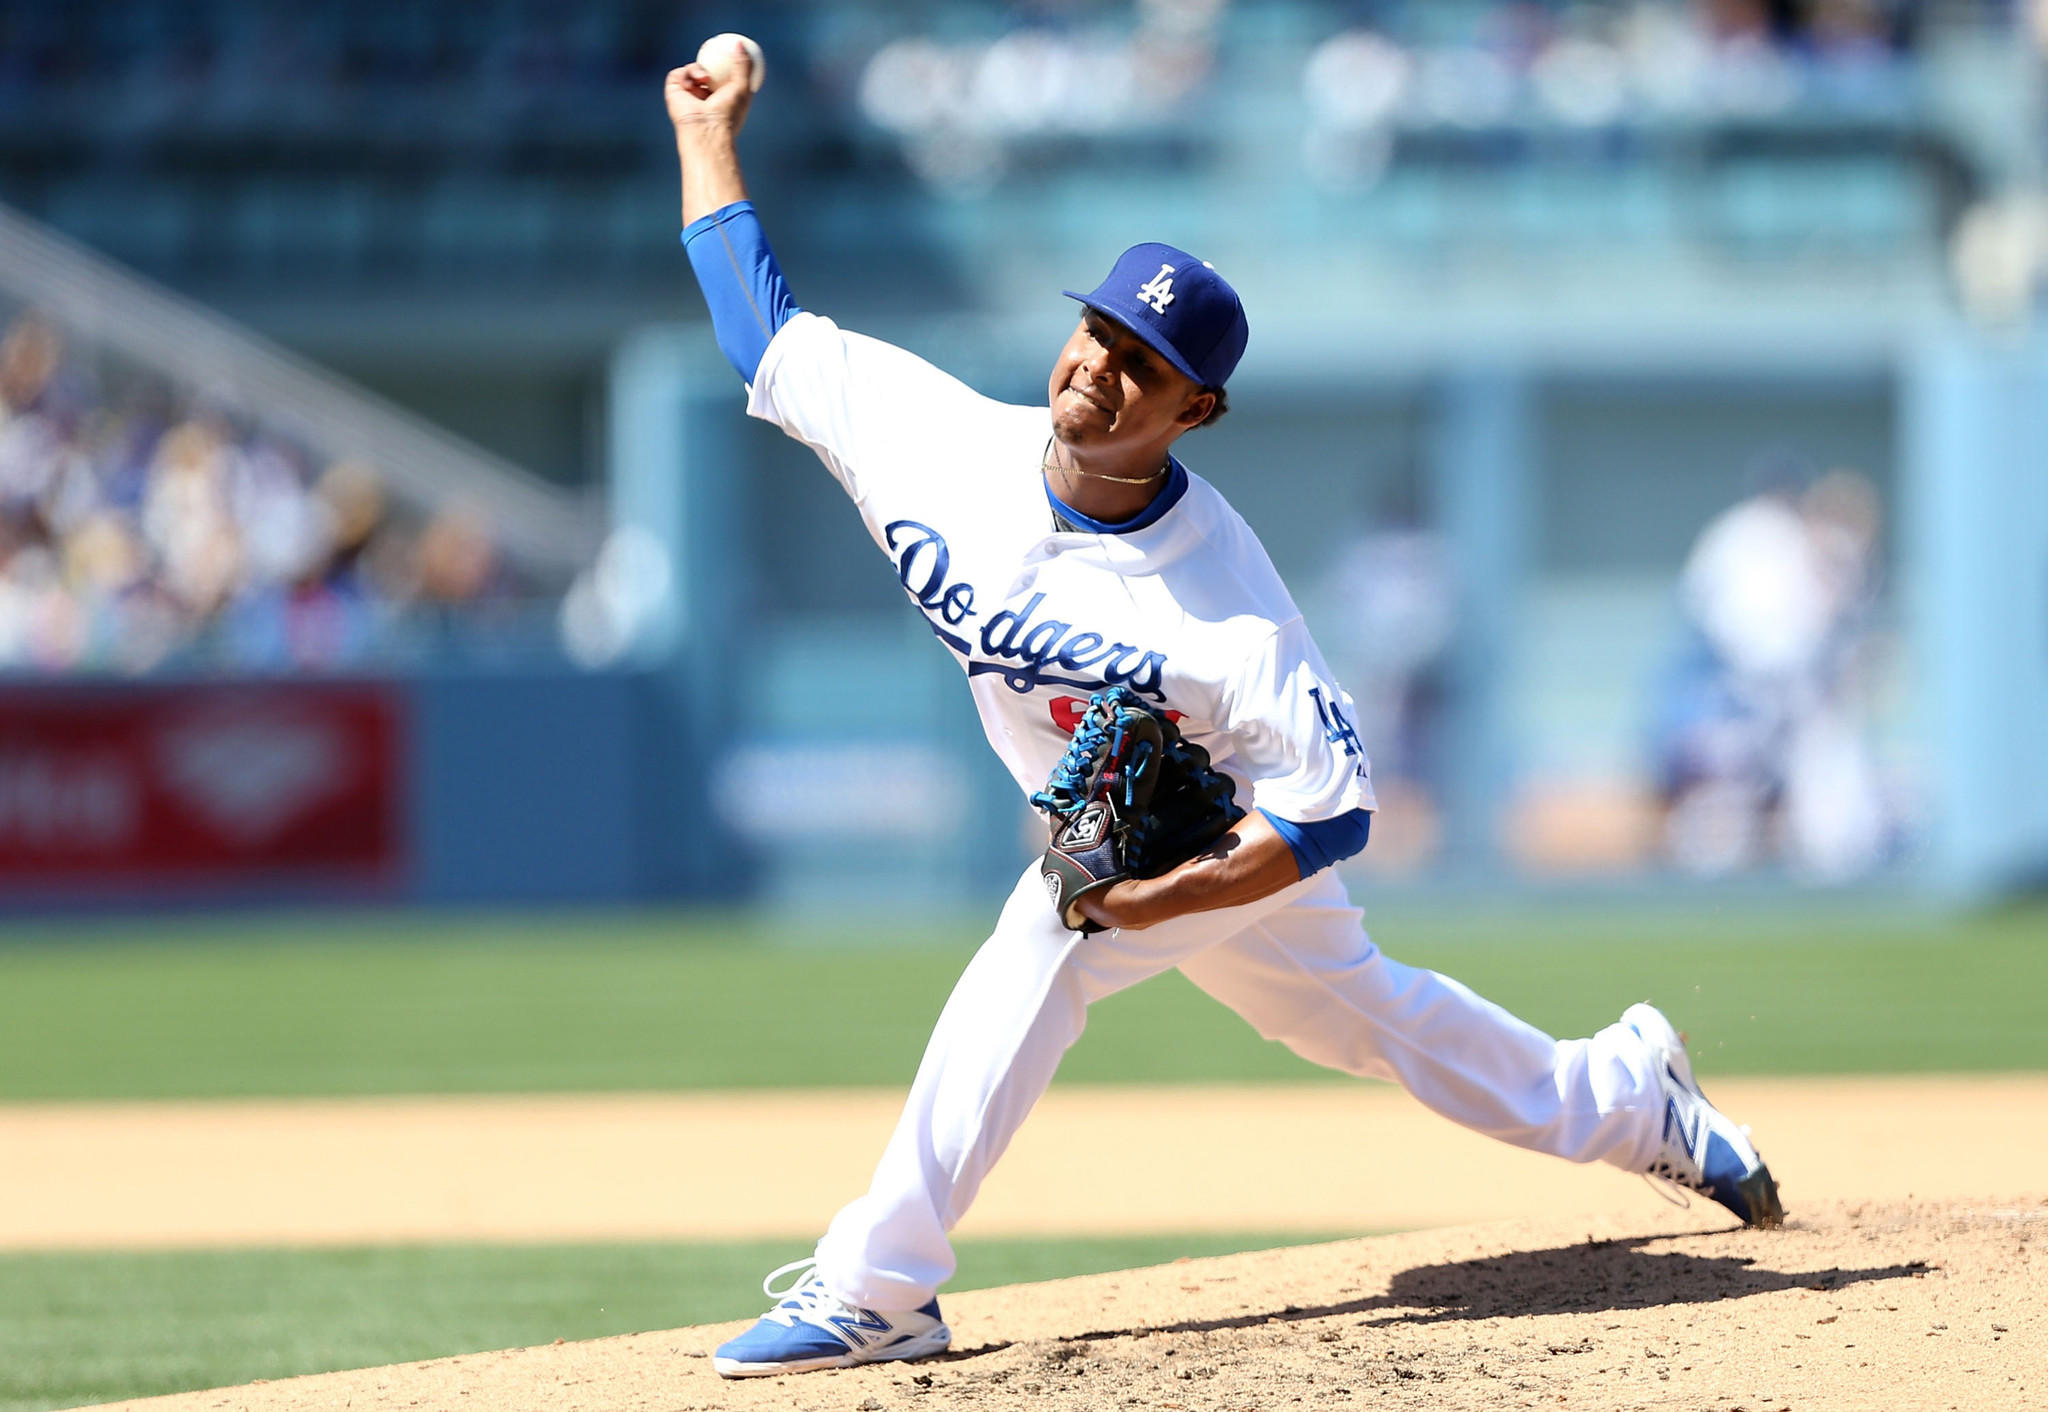 The Dodgers recalled reliever Jose Dominguez from triple-A Albuquerque on Monday.